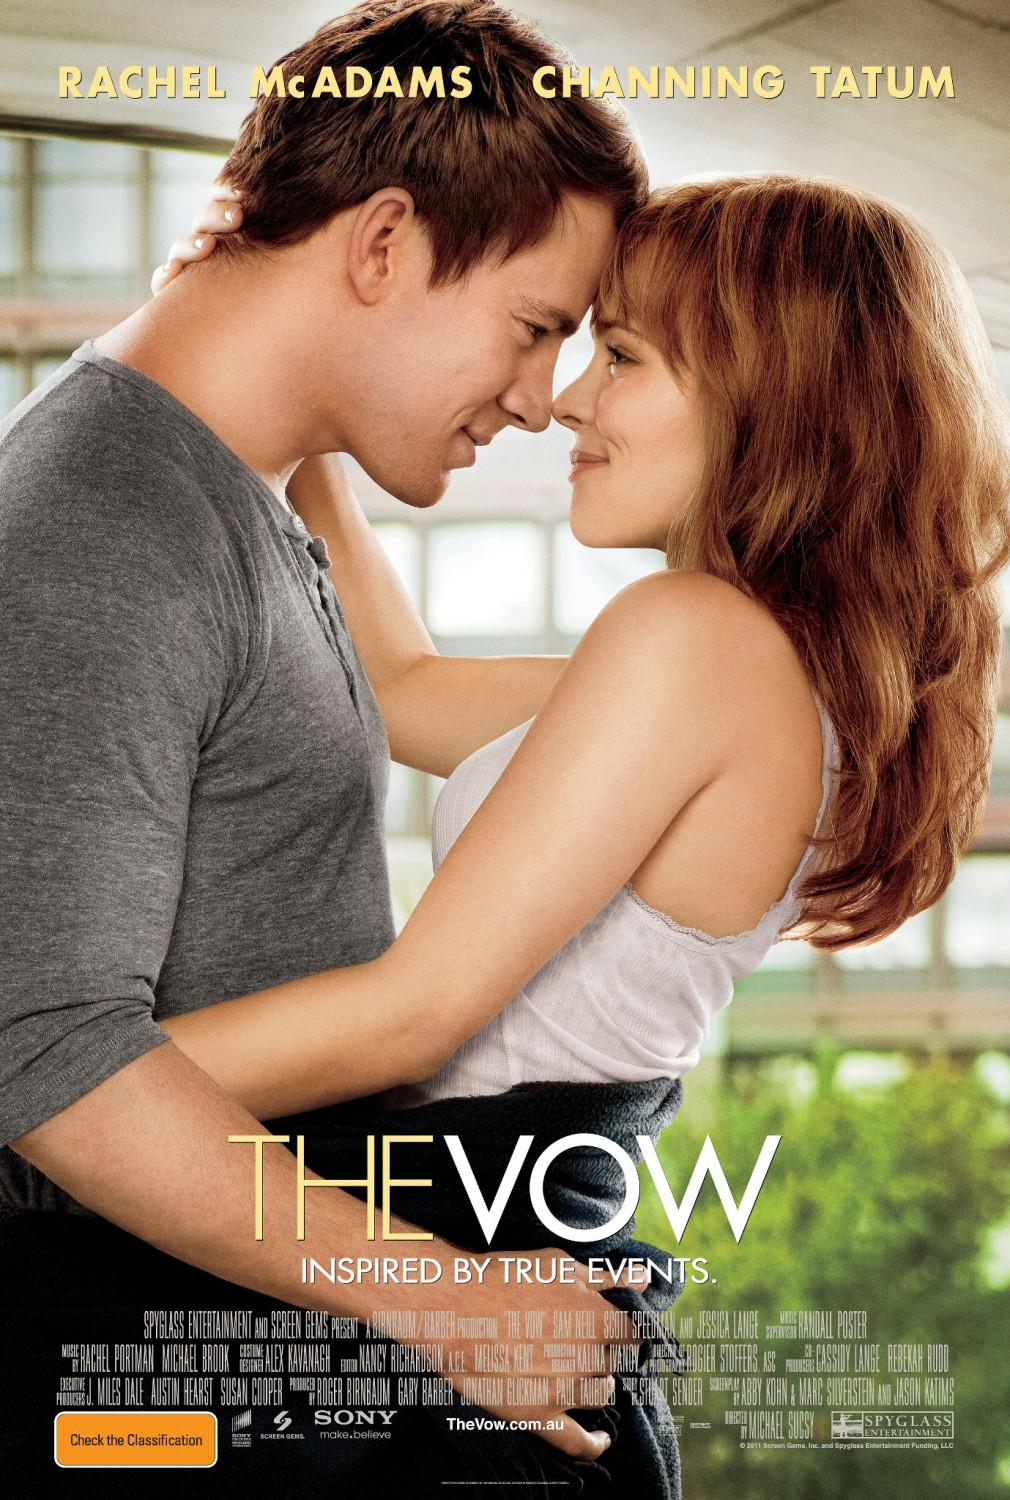 Vow - Rachel McAdams - Channing Tatum - inspired by true events